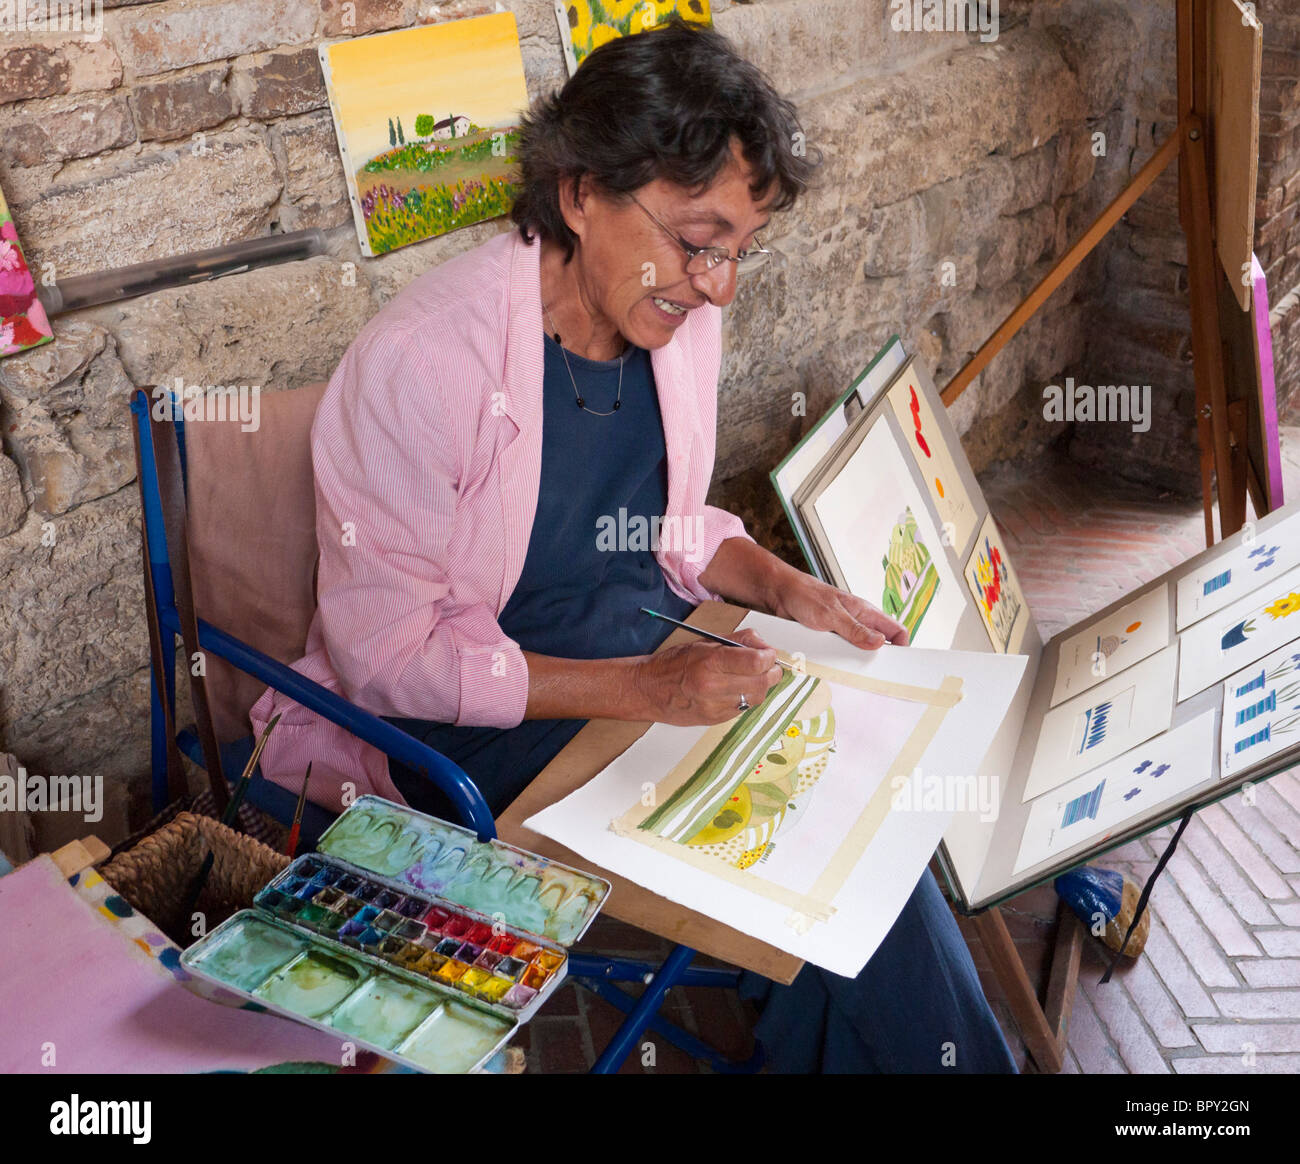 Sitting in front of ancient walls in San Gimignano, painter Anna Ragone paints watercolors - Stock Image